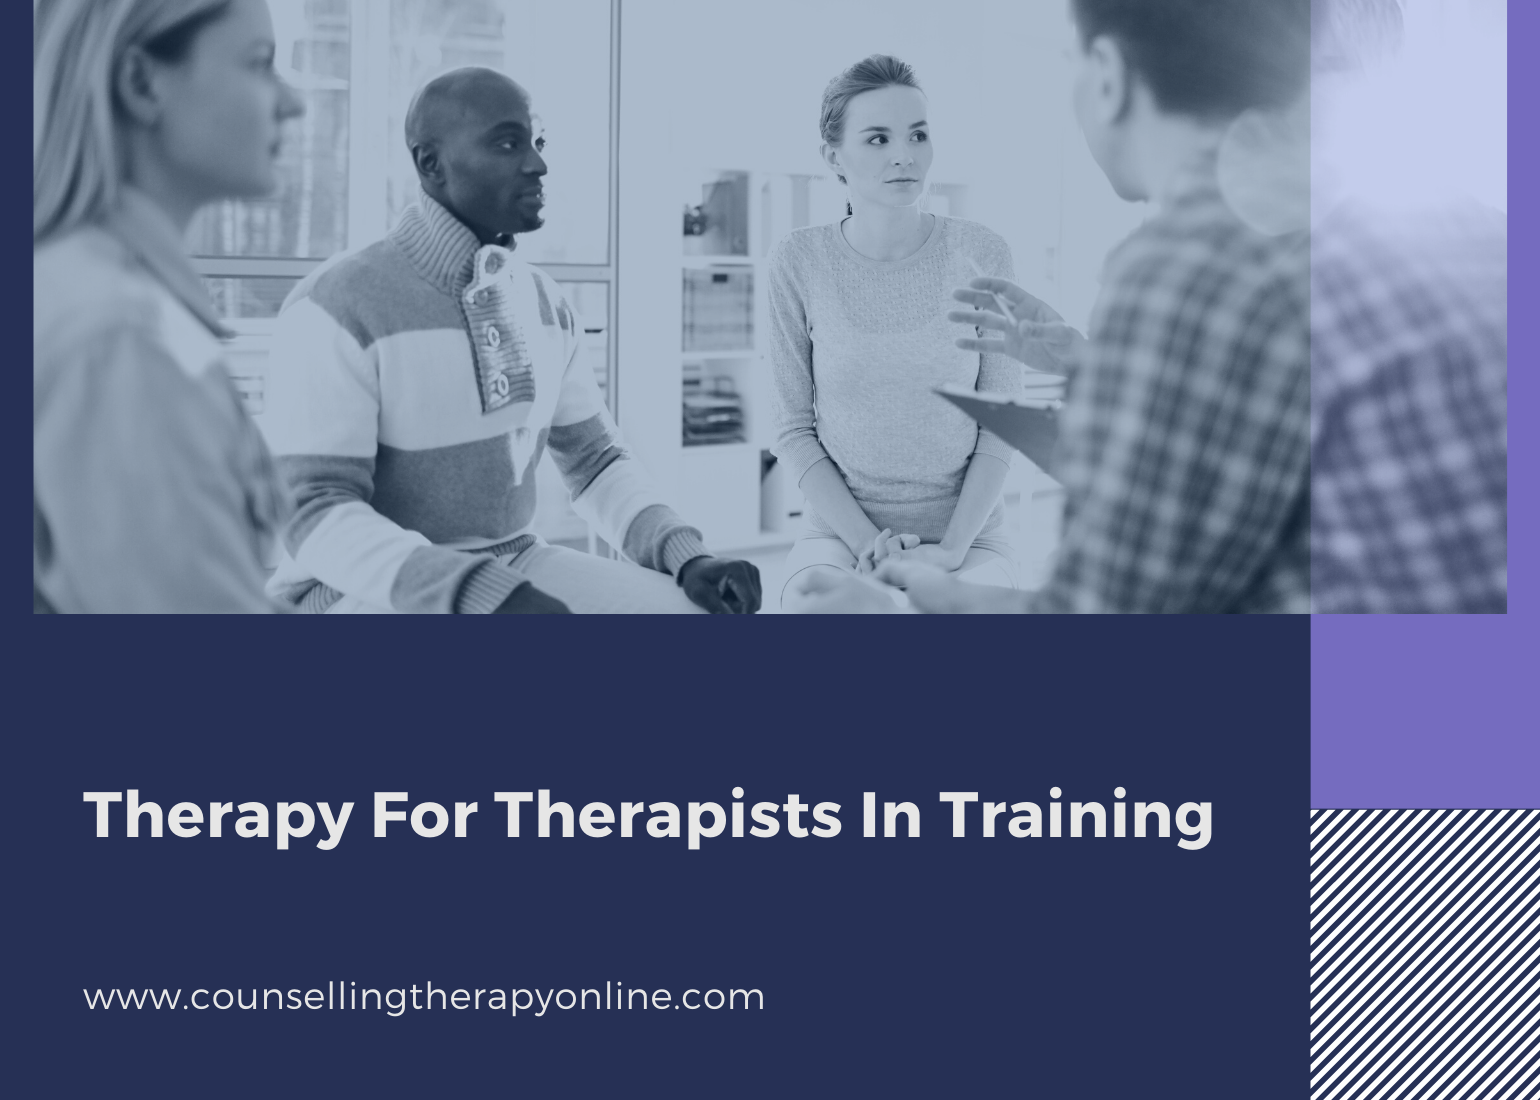 Online therapy for therapists in training